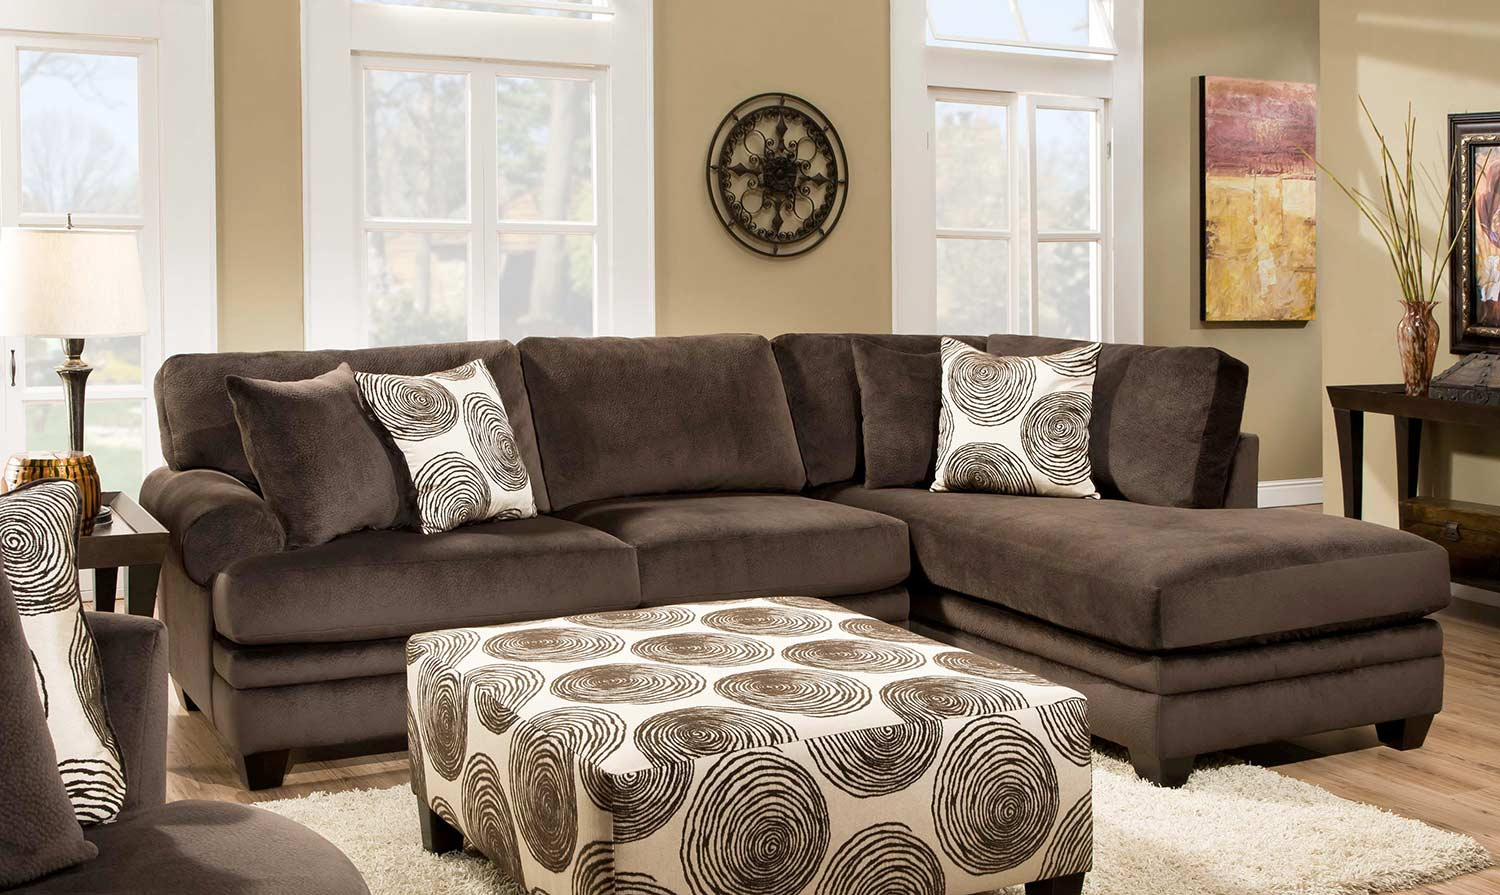 Chelsea Home Rayna 2 Pc Sectional Sofa   Groovy Chocolate